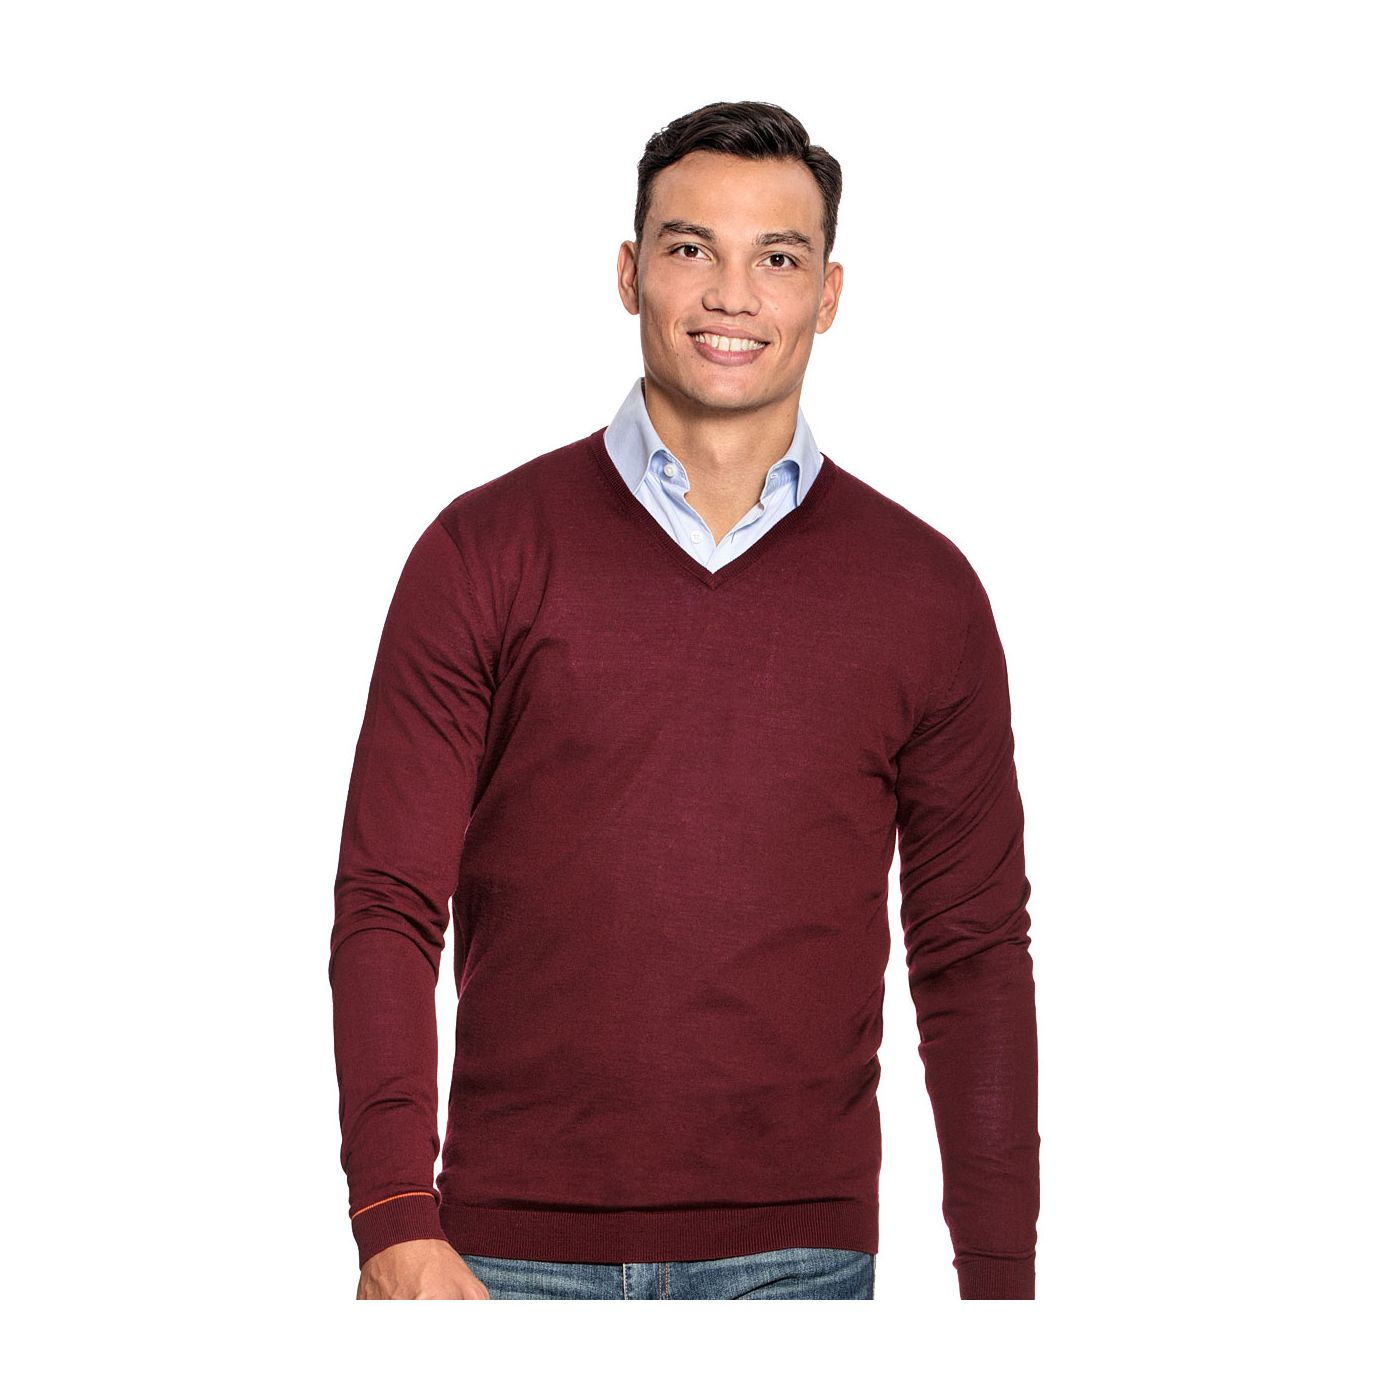 Extra long V Neck sweater for men made of Merino wool in Red